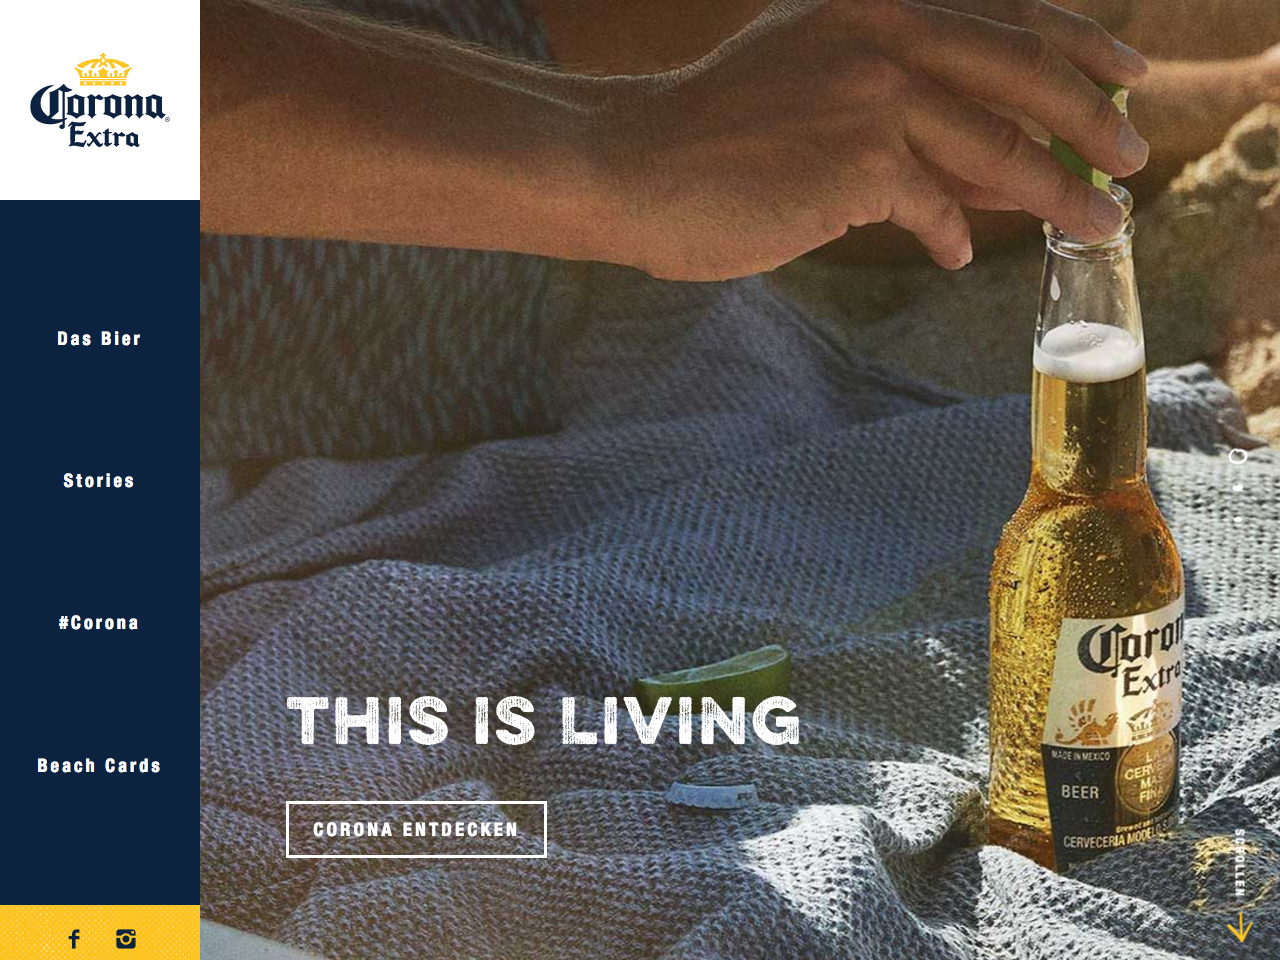 Corona Extra. This is living.